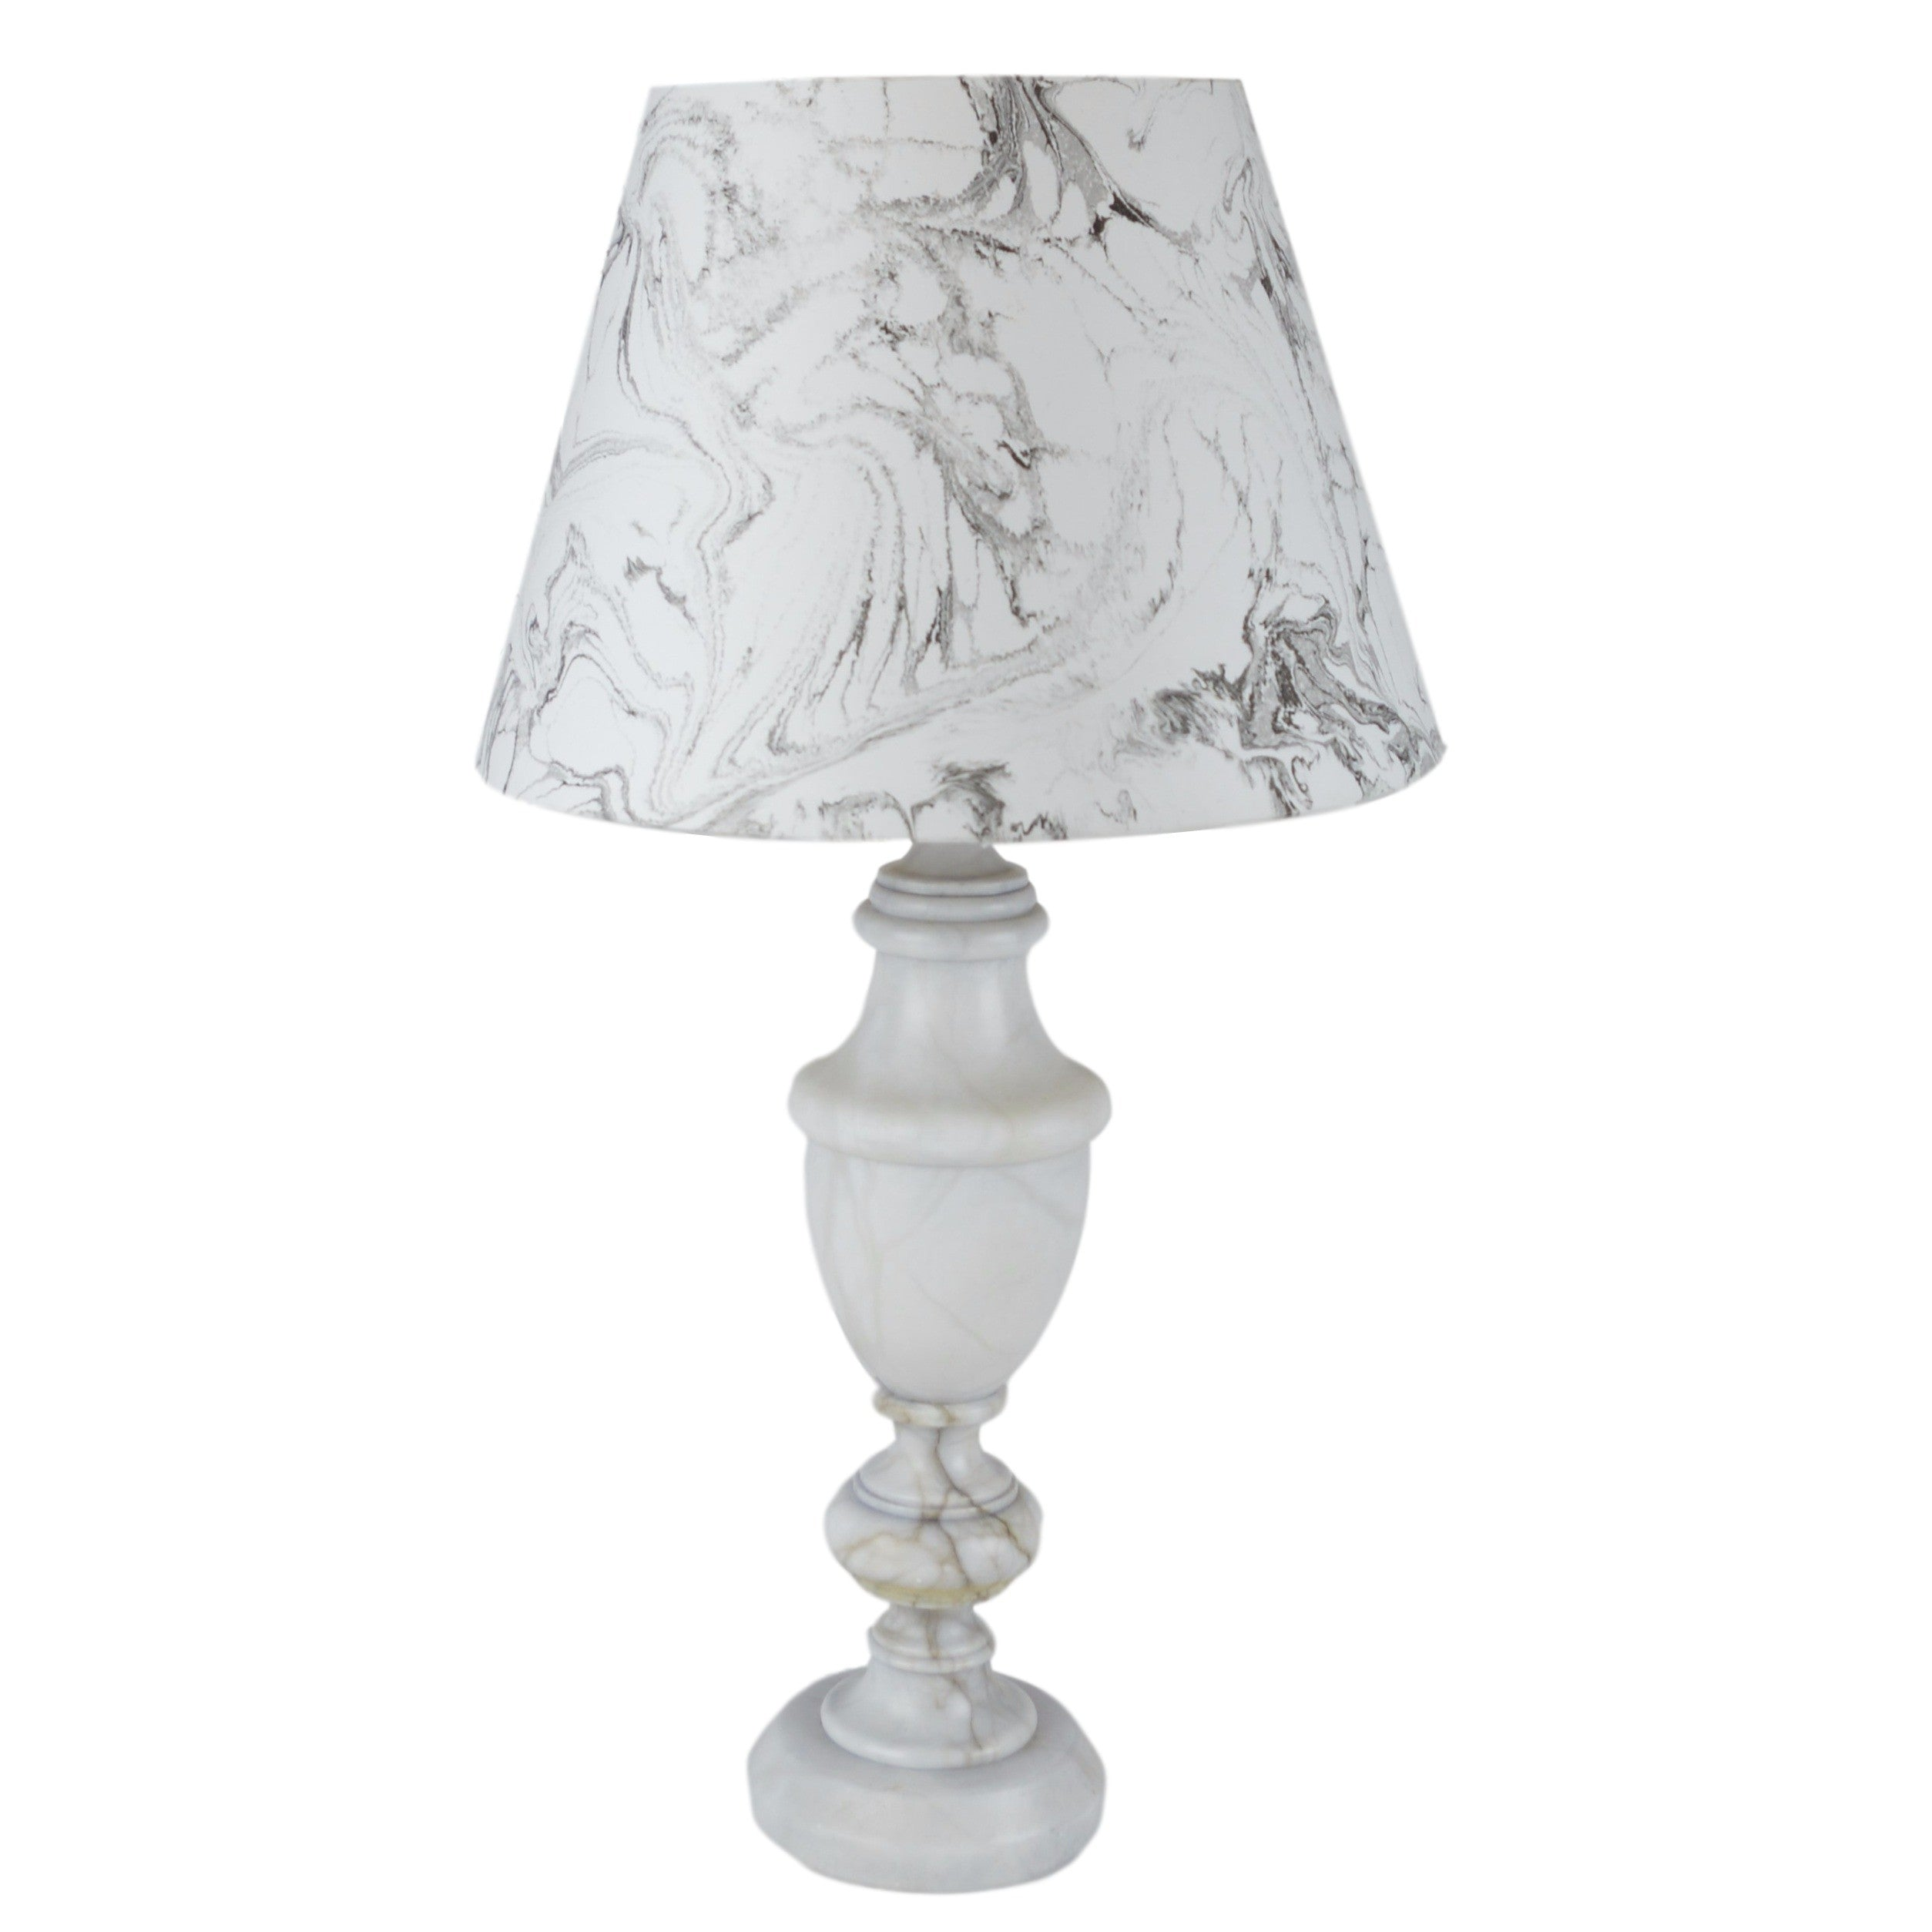 Munro and Kerr hand marbled lampshade and carrara marble lamp base